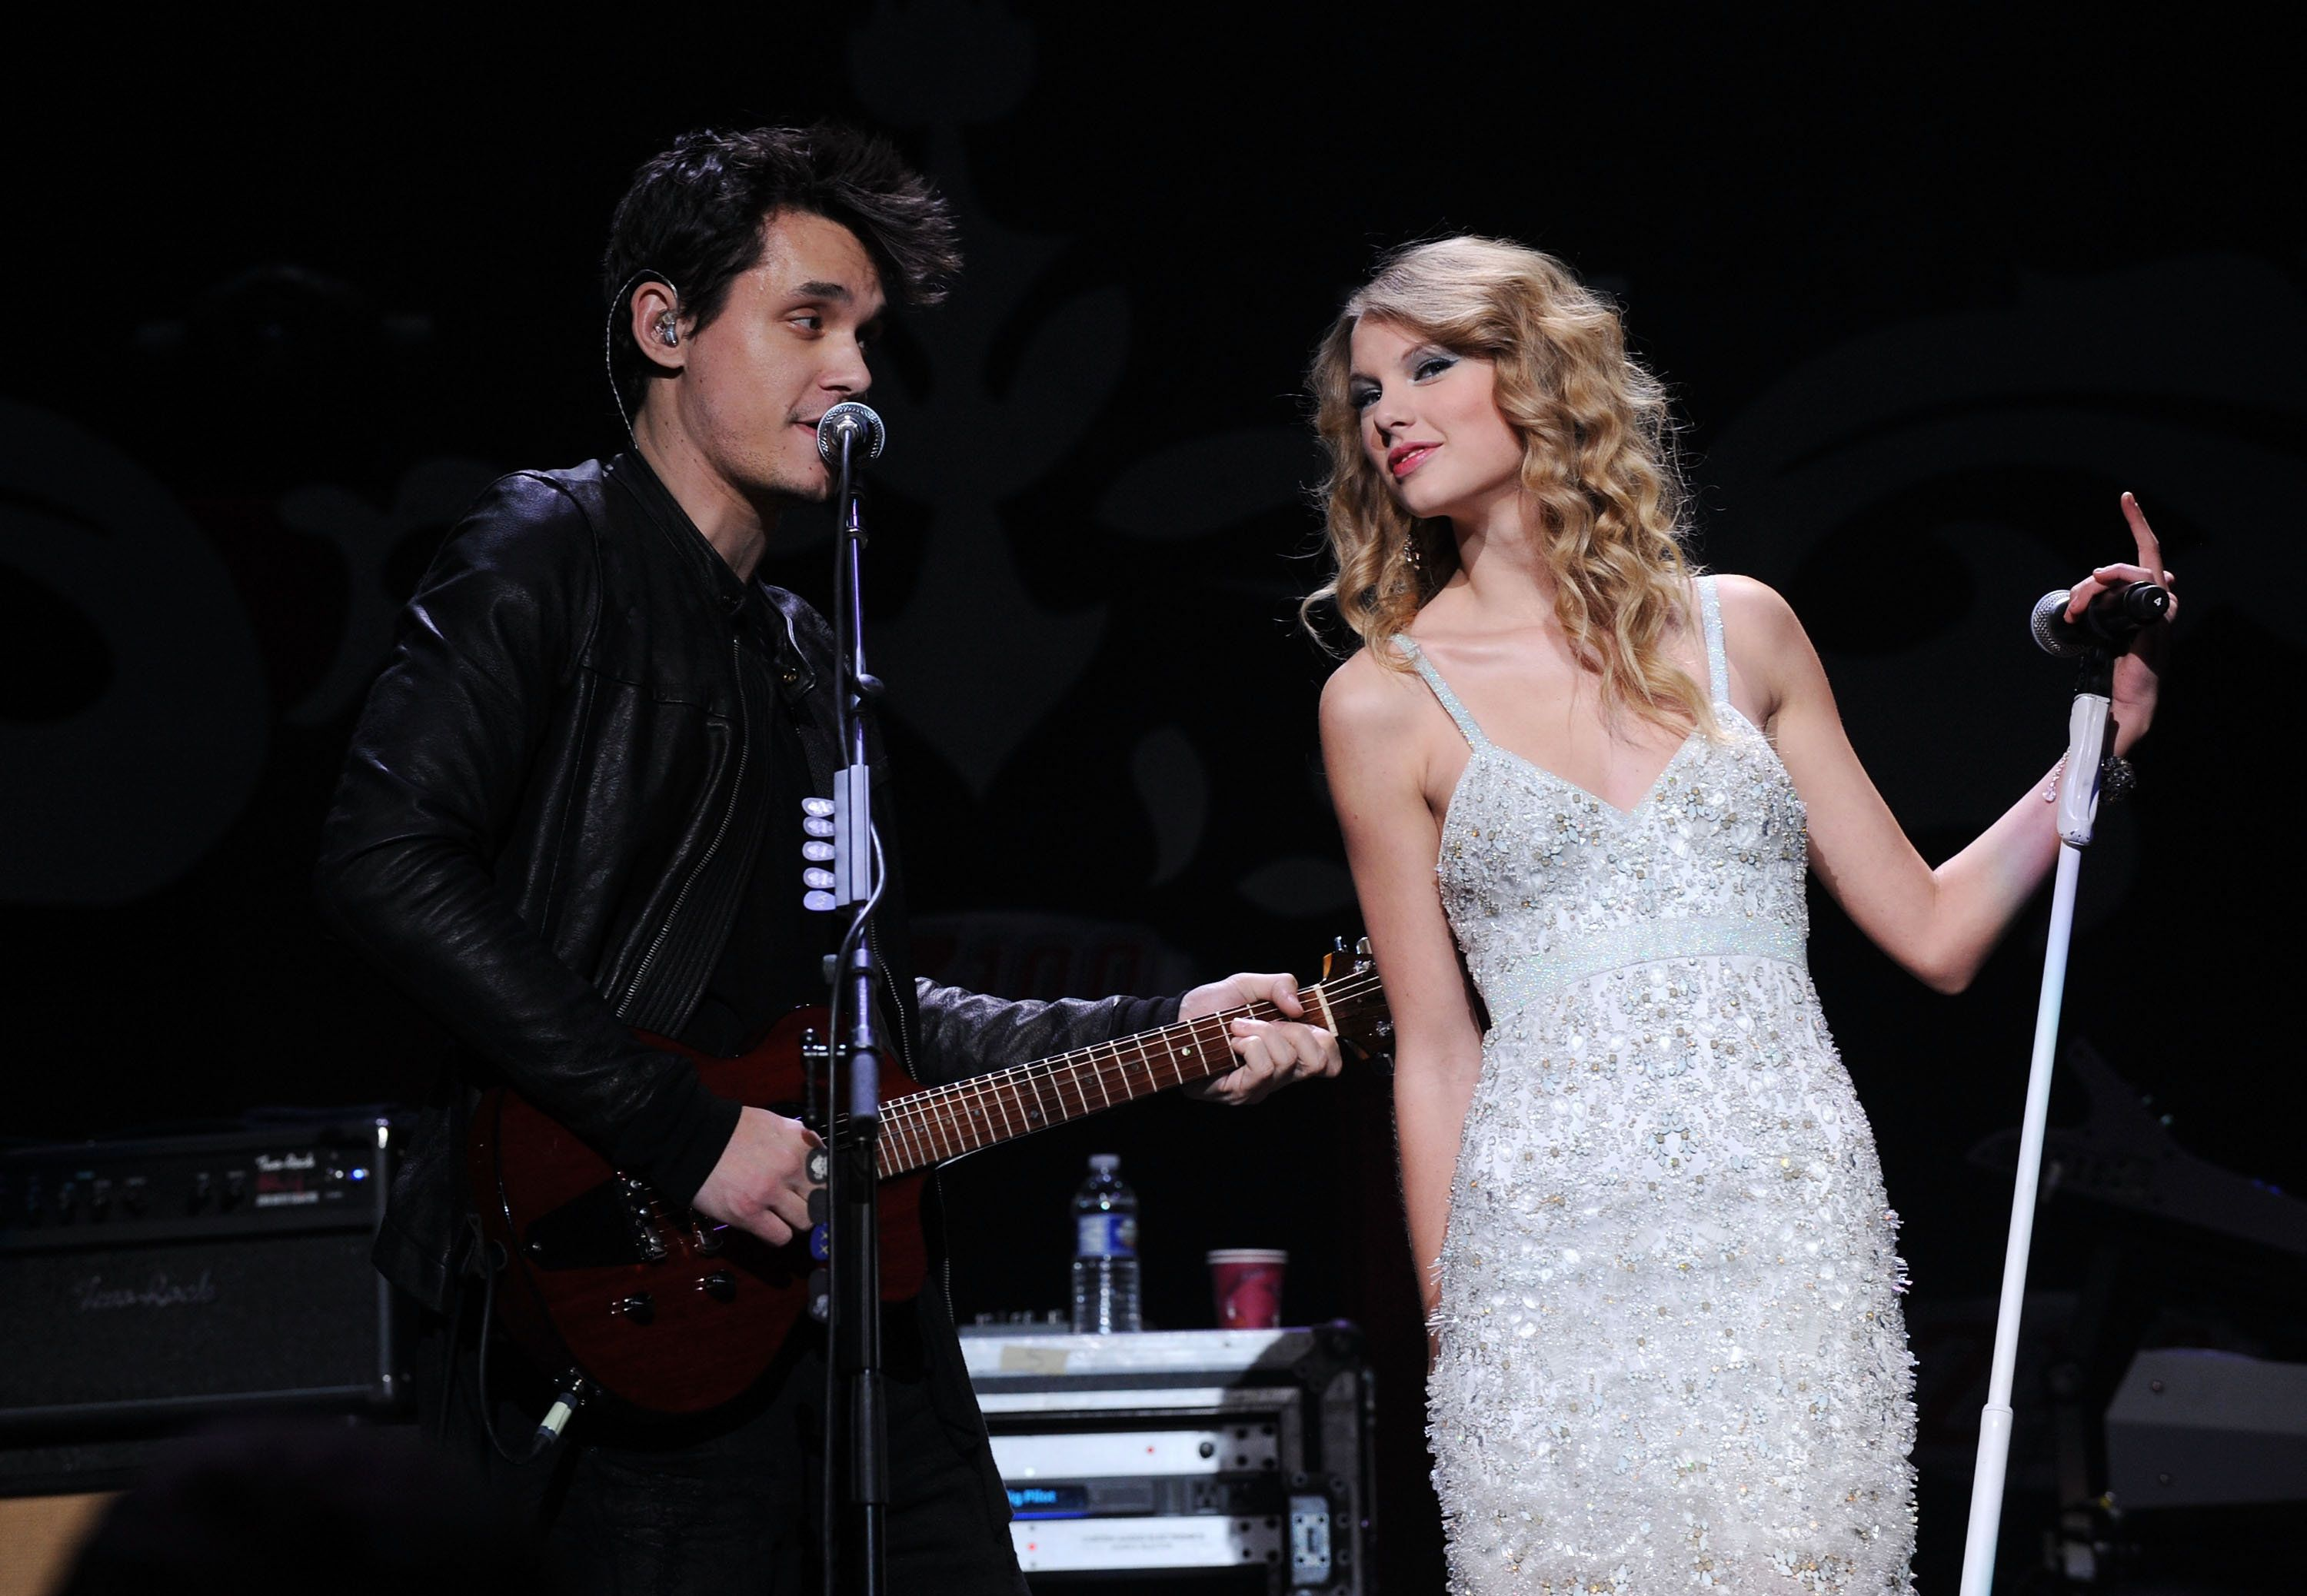 NEW YORK - DECEMBER 11:  John Mayer and Taylor Swift perform onstage during Z100's Jingle Ball 2009 presented by H&M at Madison Square Garden on December 11, 2009 in New York City.  (Photo by Theo Wargo/WireImage for Clear Channel Radio New York)